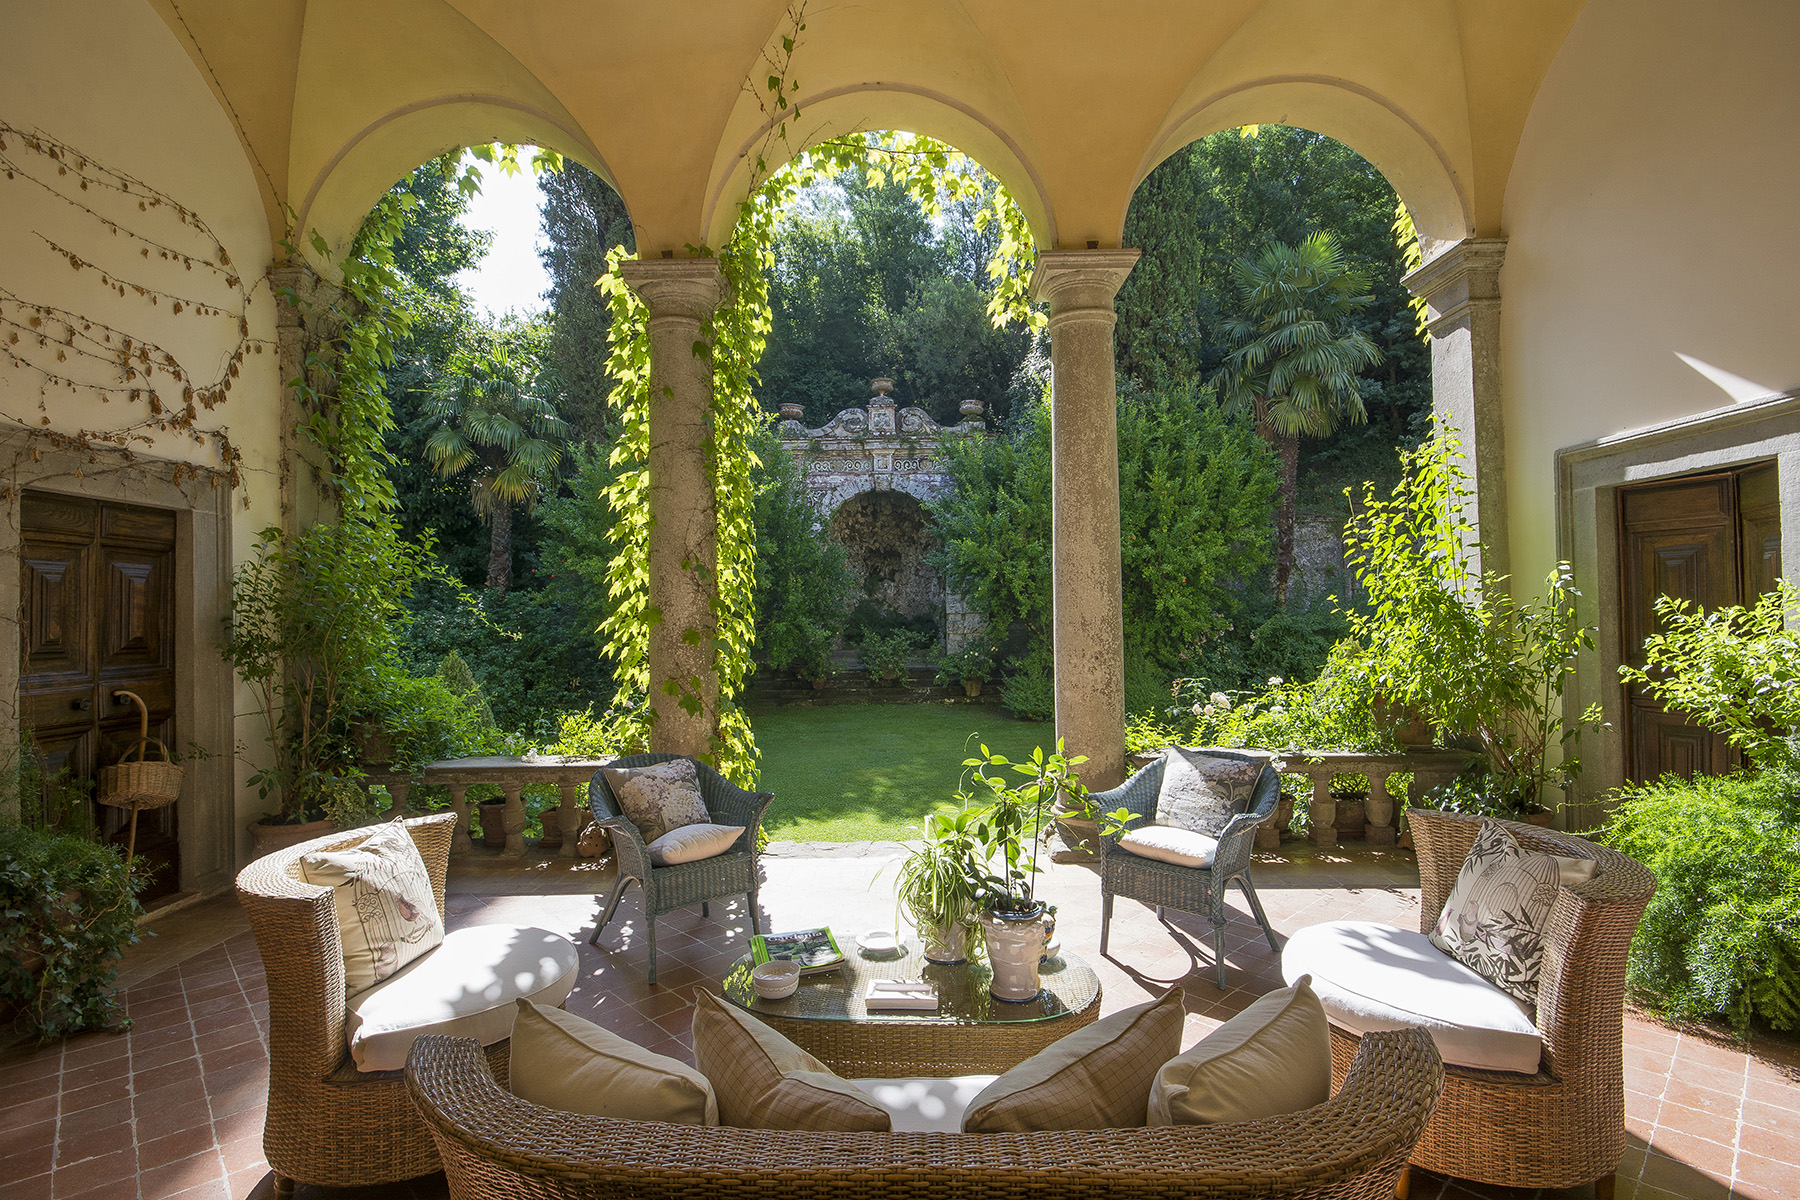 Residential For Sale in Vorno, Capannori, Lucca   , Italy